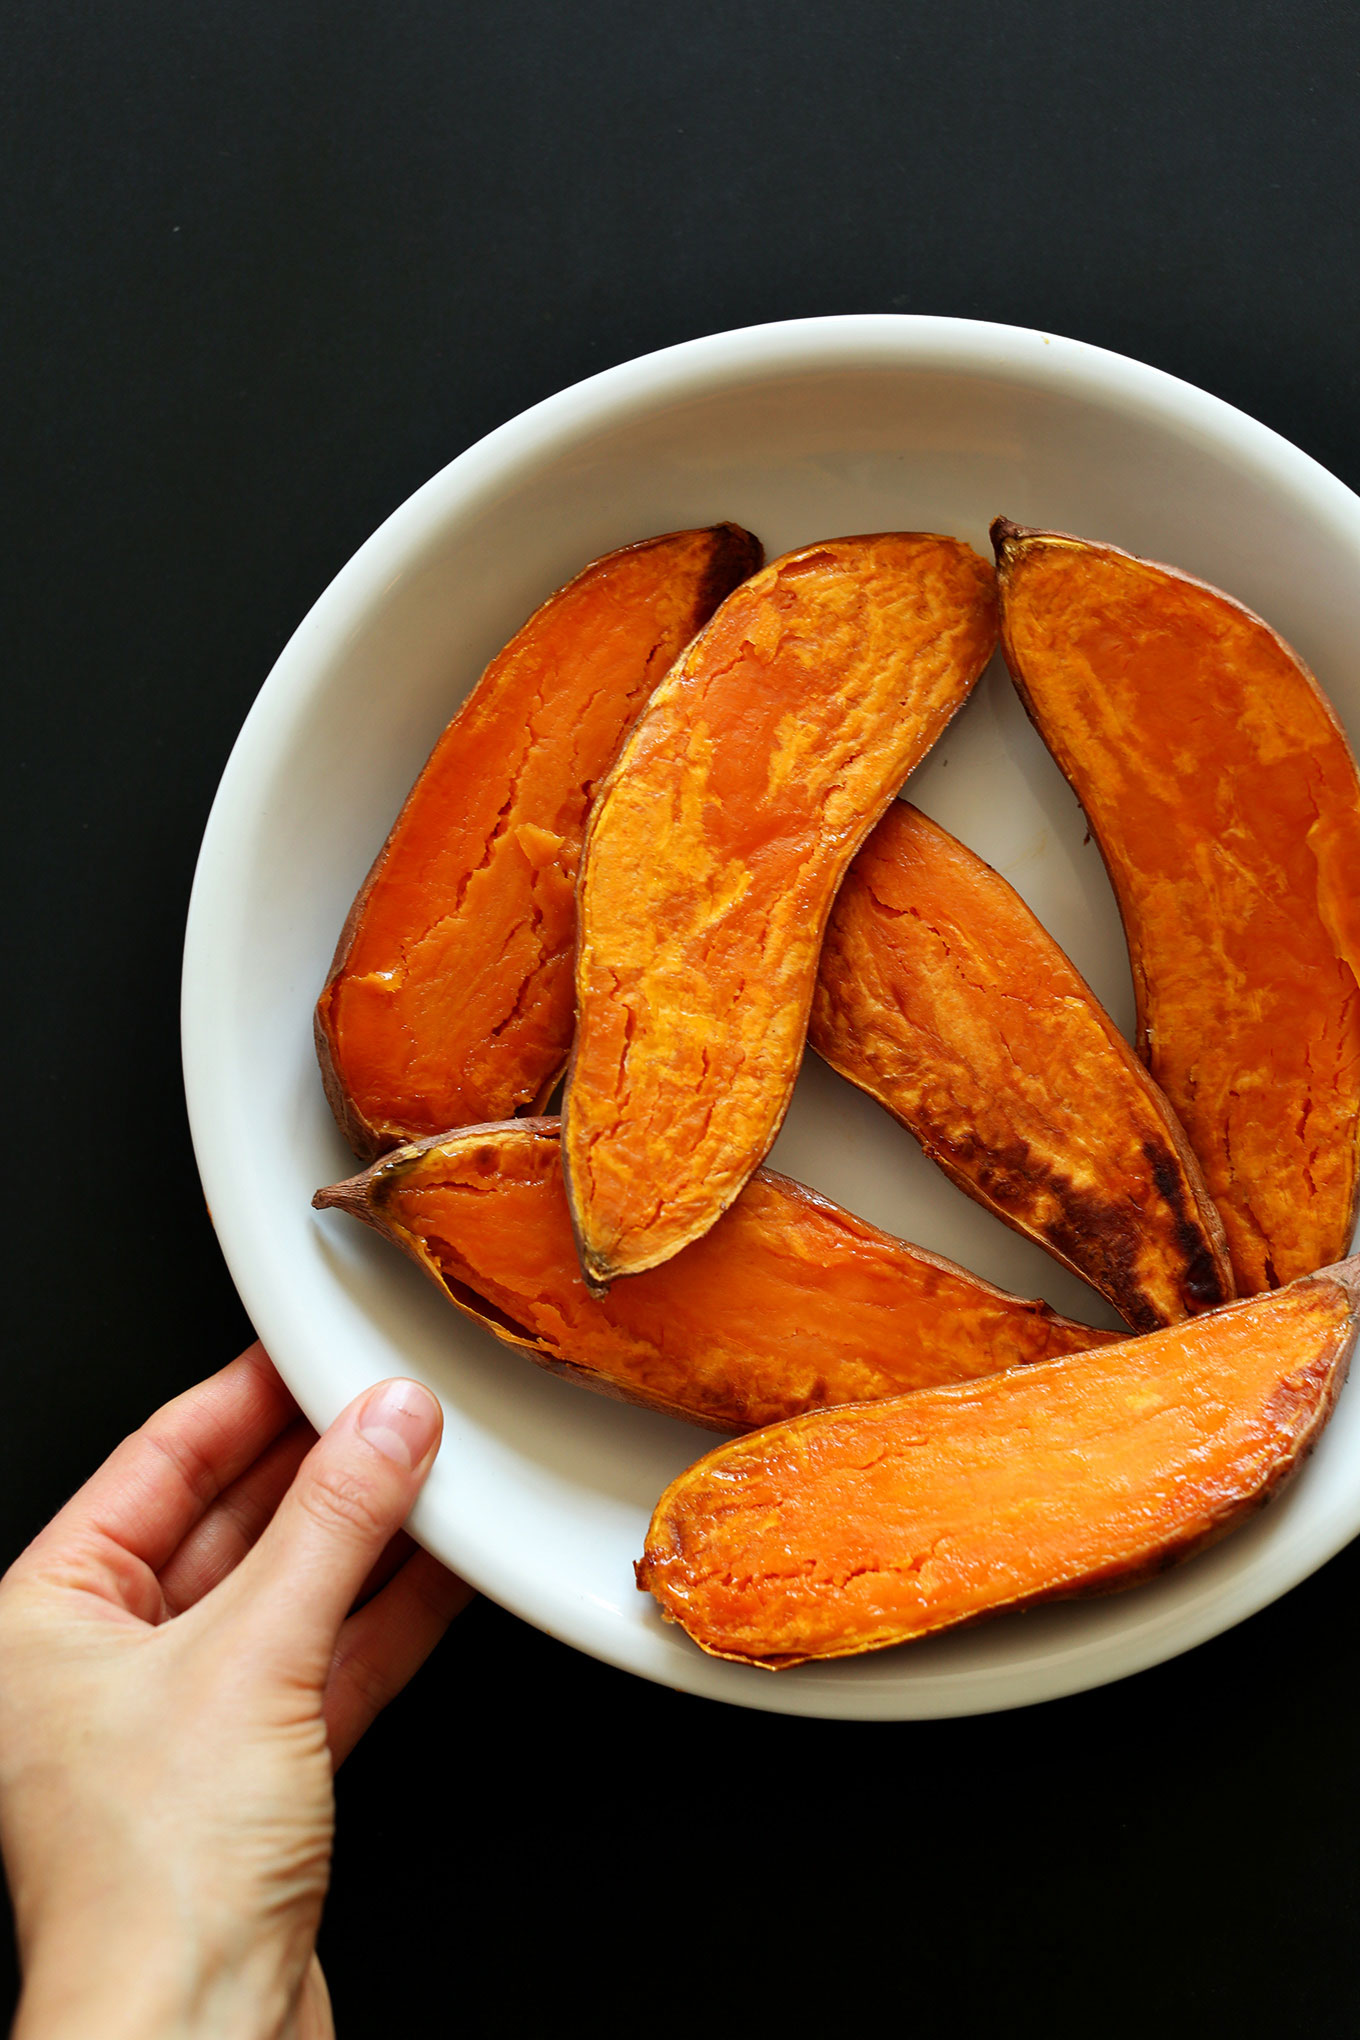 Big bowl of freshly roasted halved sweet potatoes